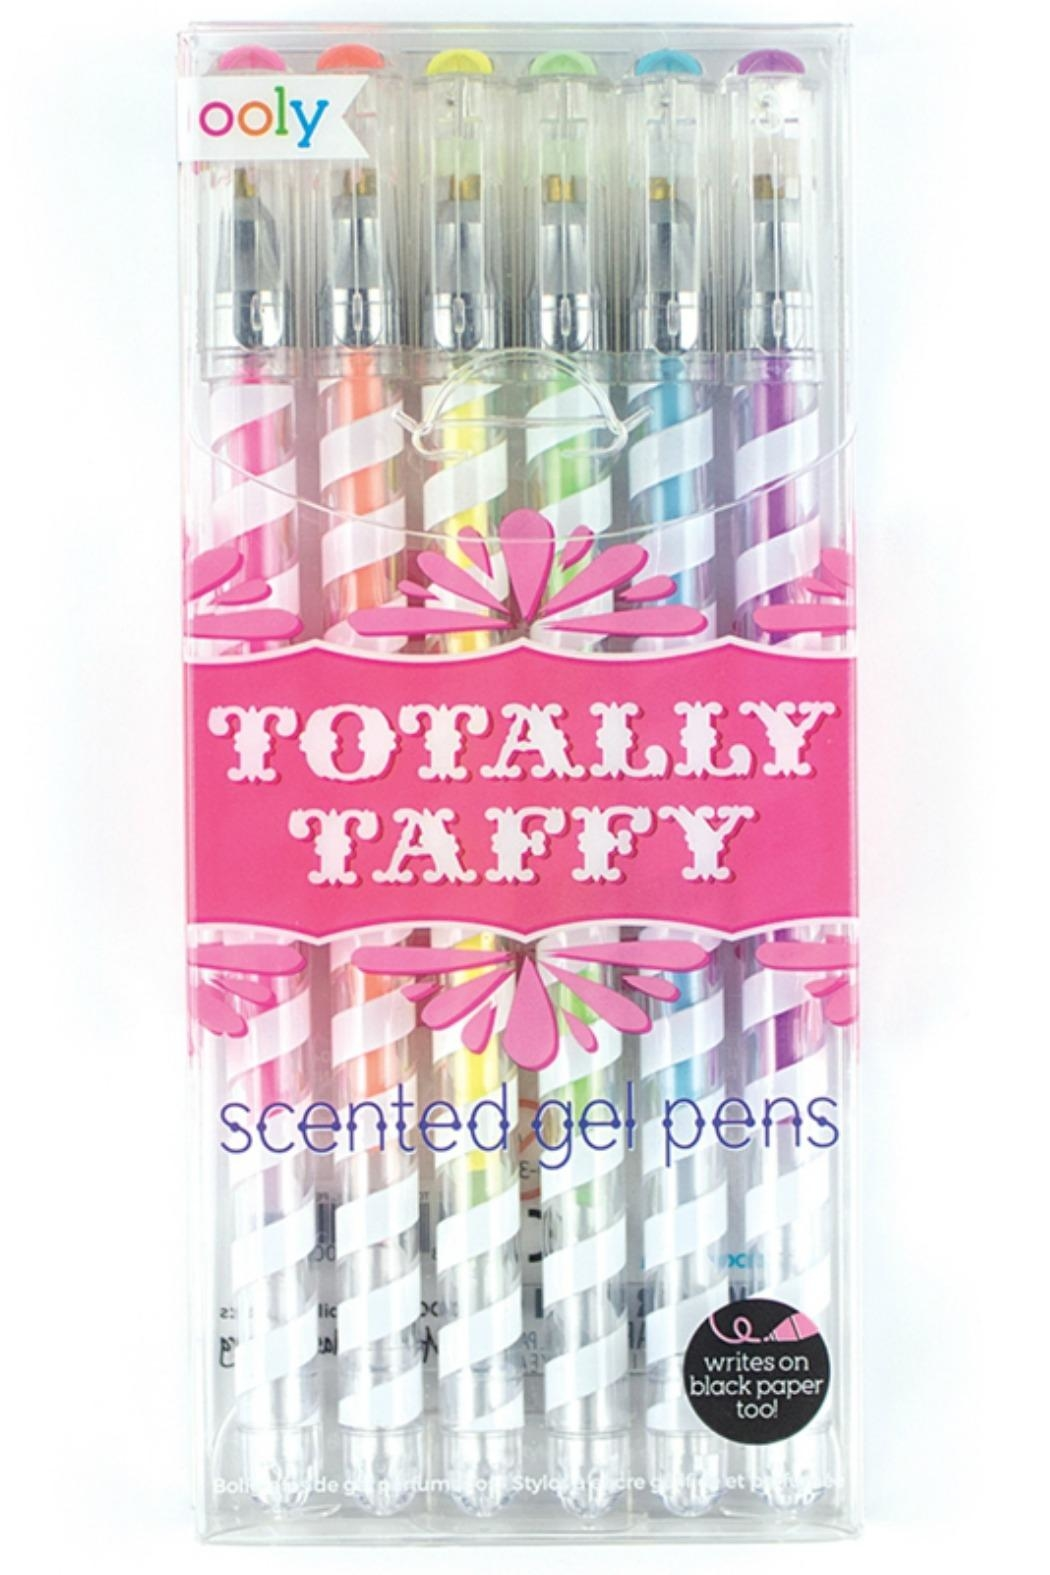 Ooly Taffy Scented Pens - Main Image